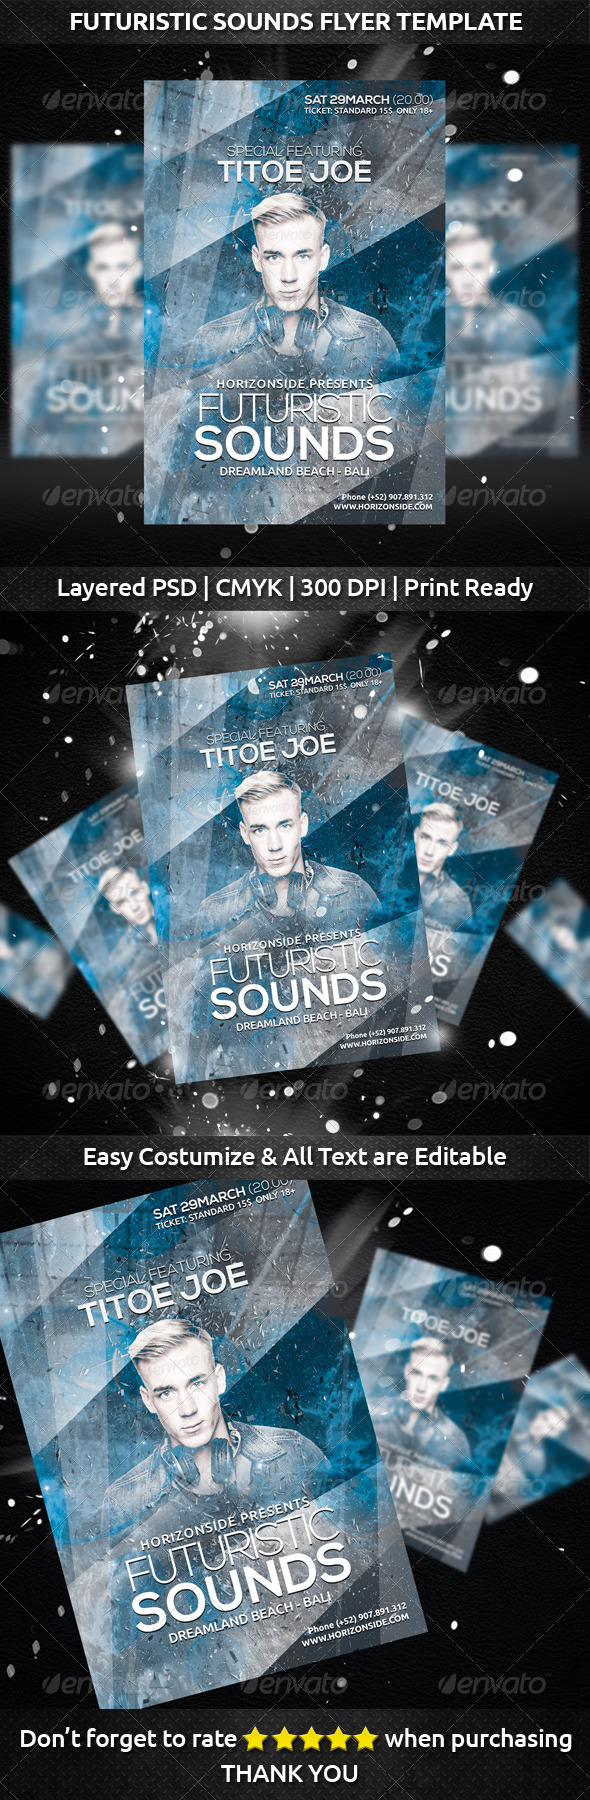 GraphicRiver Futuristic Sounds Flyer Template 7251547